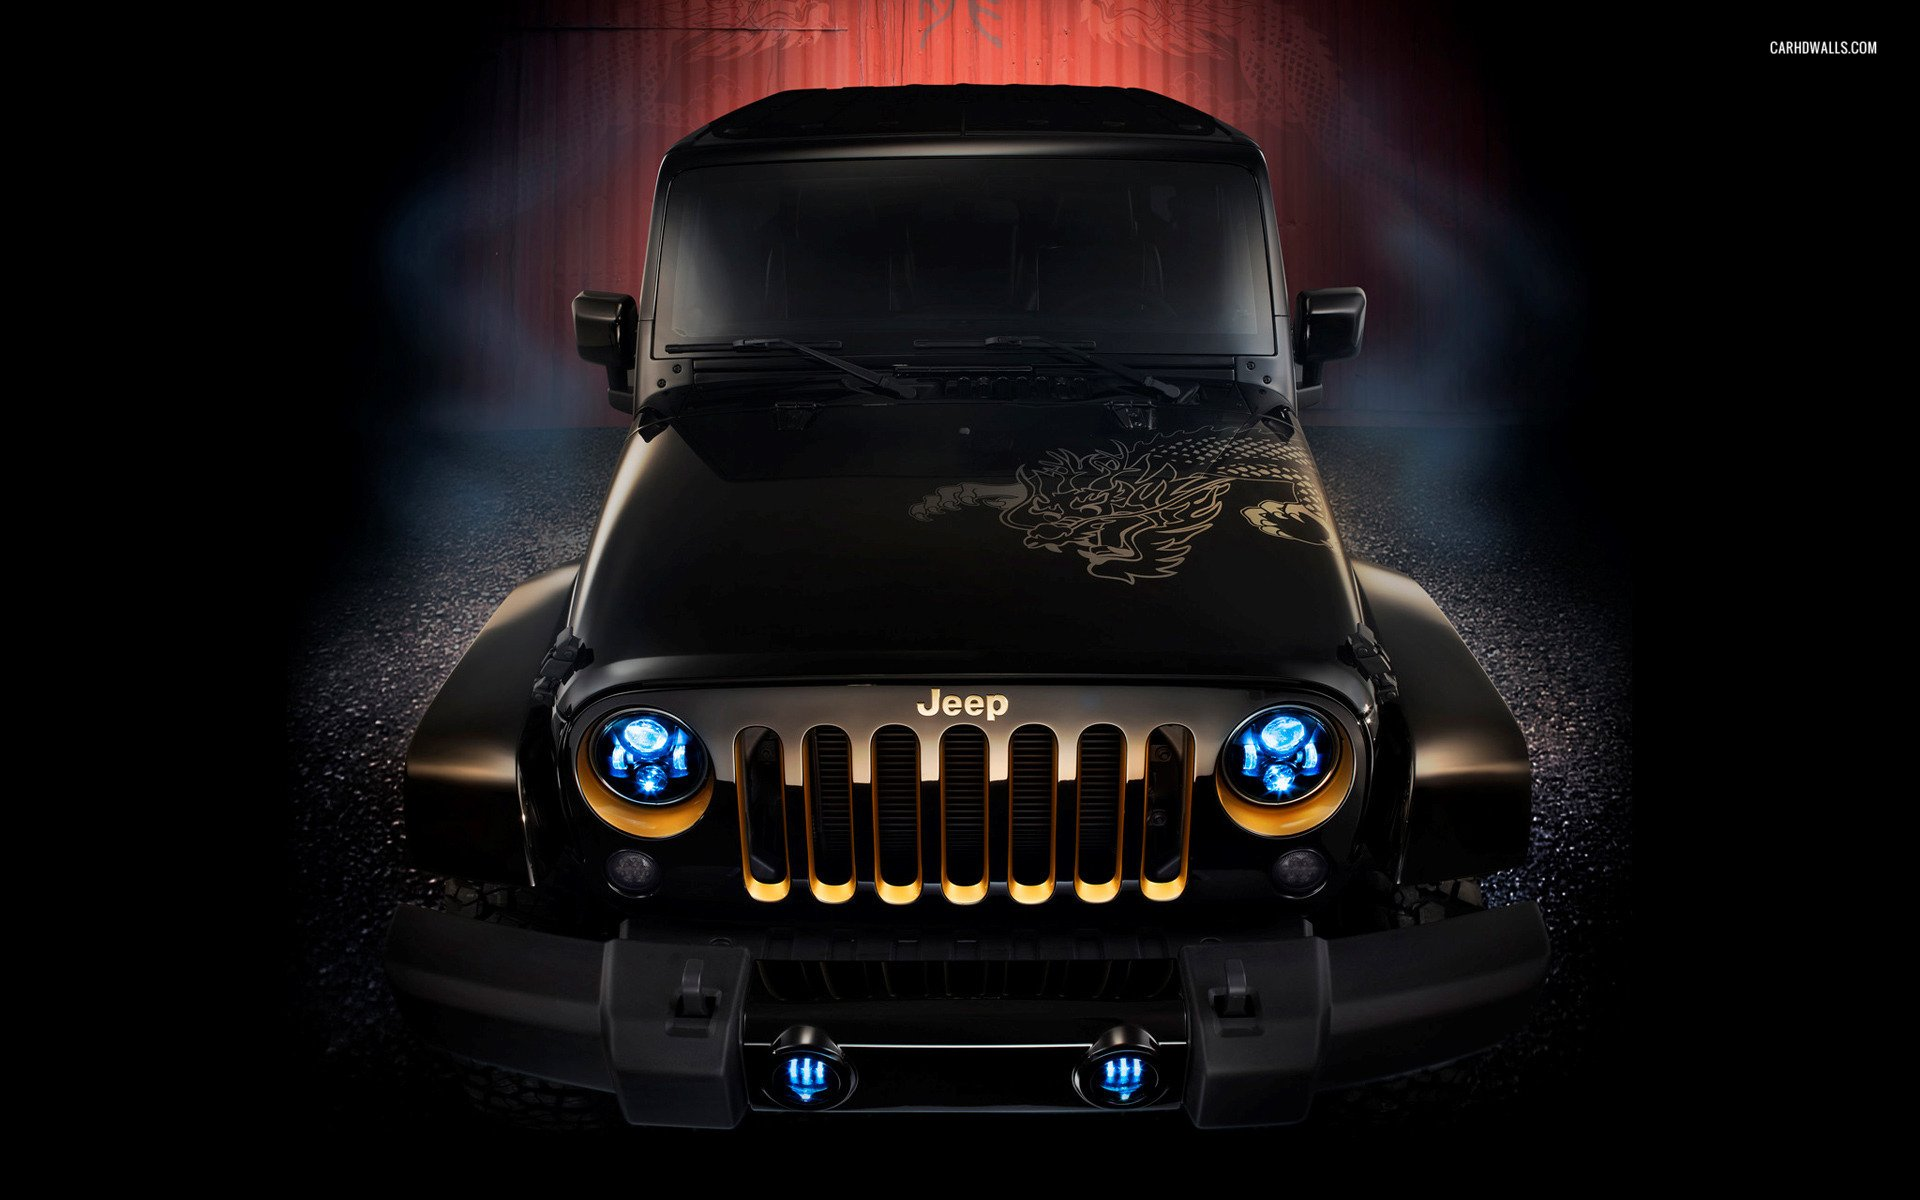 105 Jeep Hd Wallpapers Background Images Wallpaper Abyss